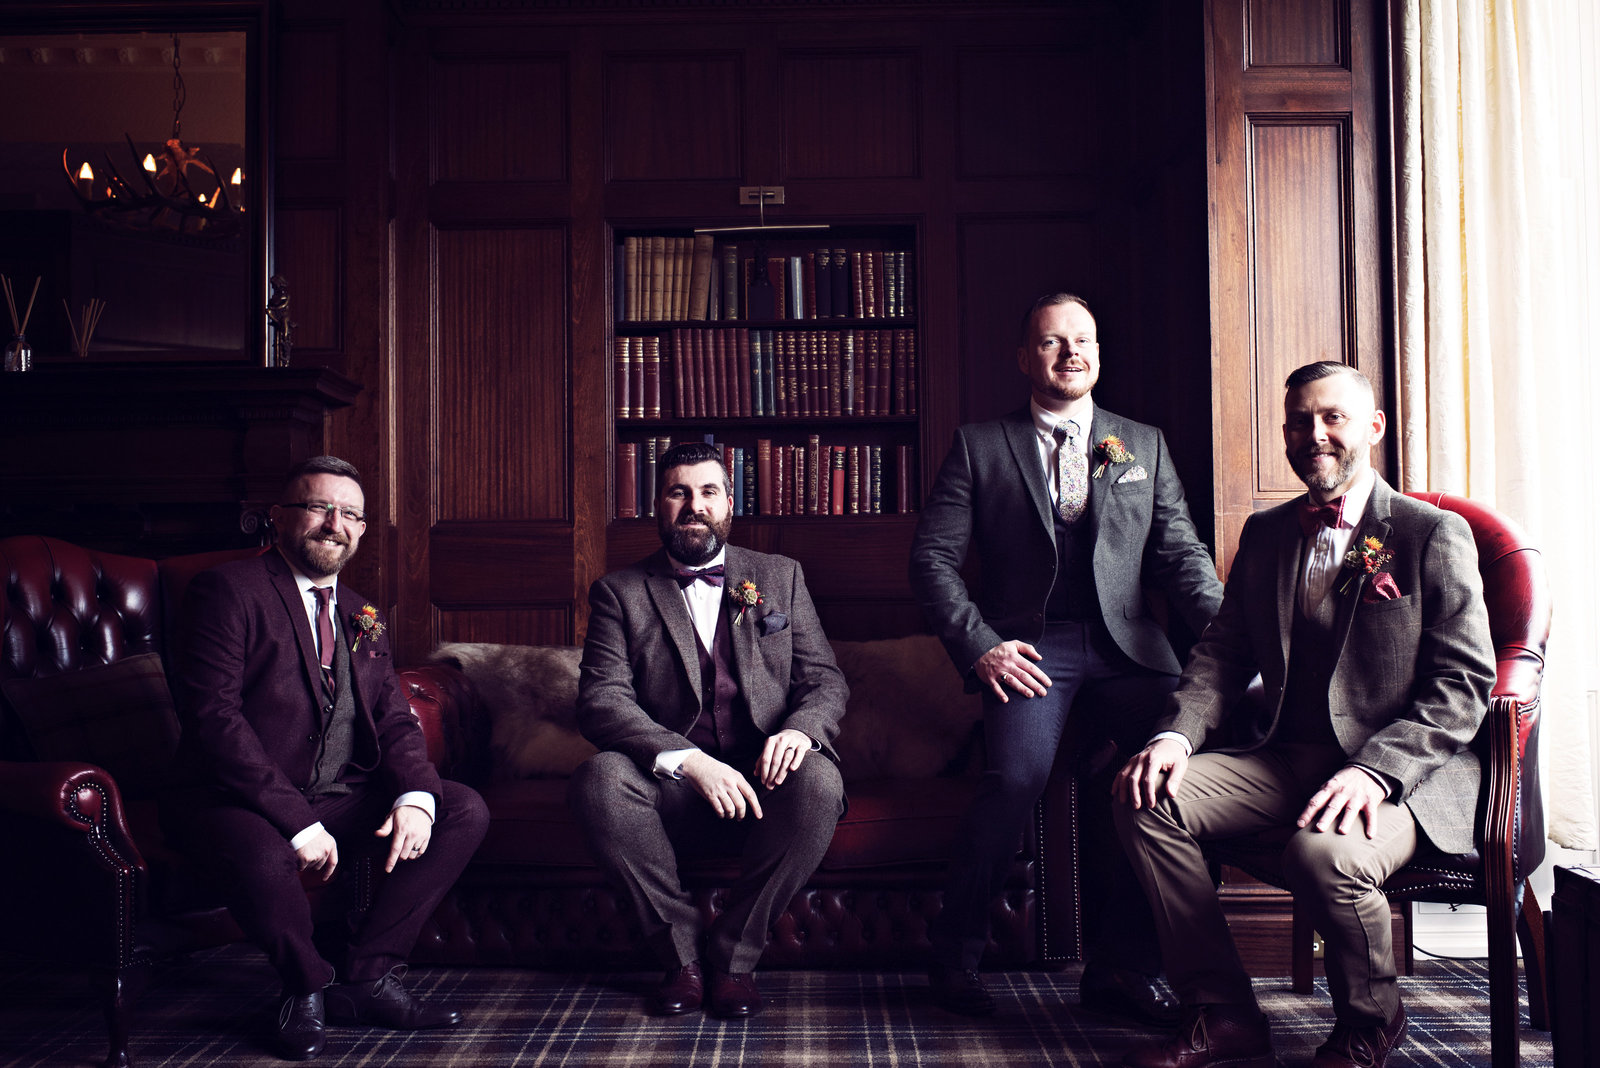 Groomsmen relax in the lounge before the ceremony at Ashfield House Hotel in Standish Lancashire